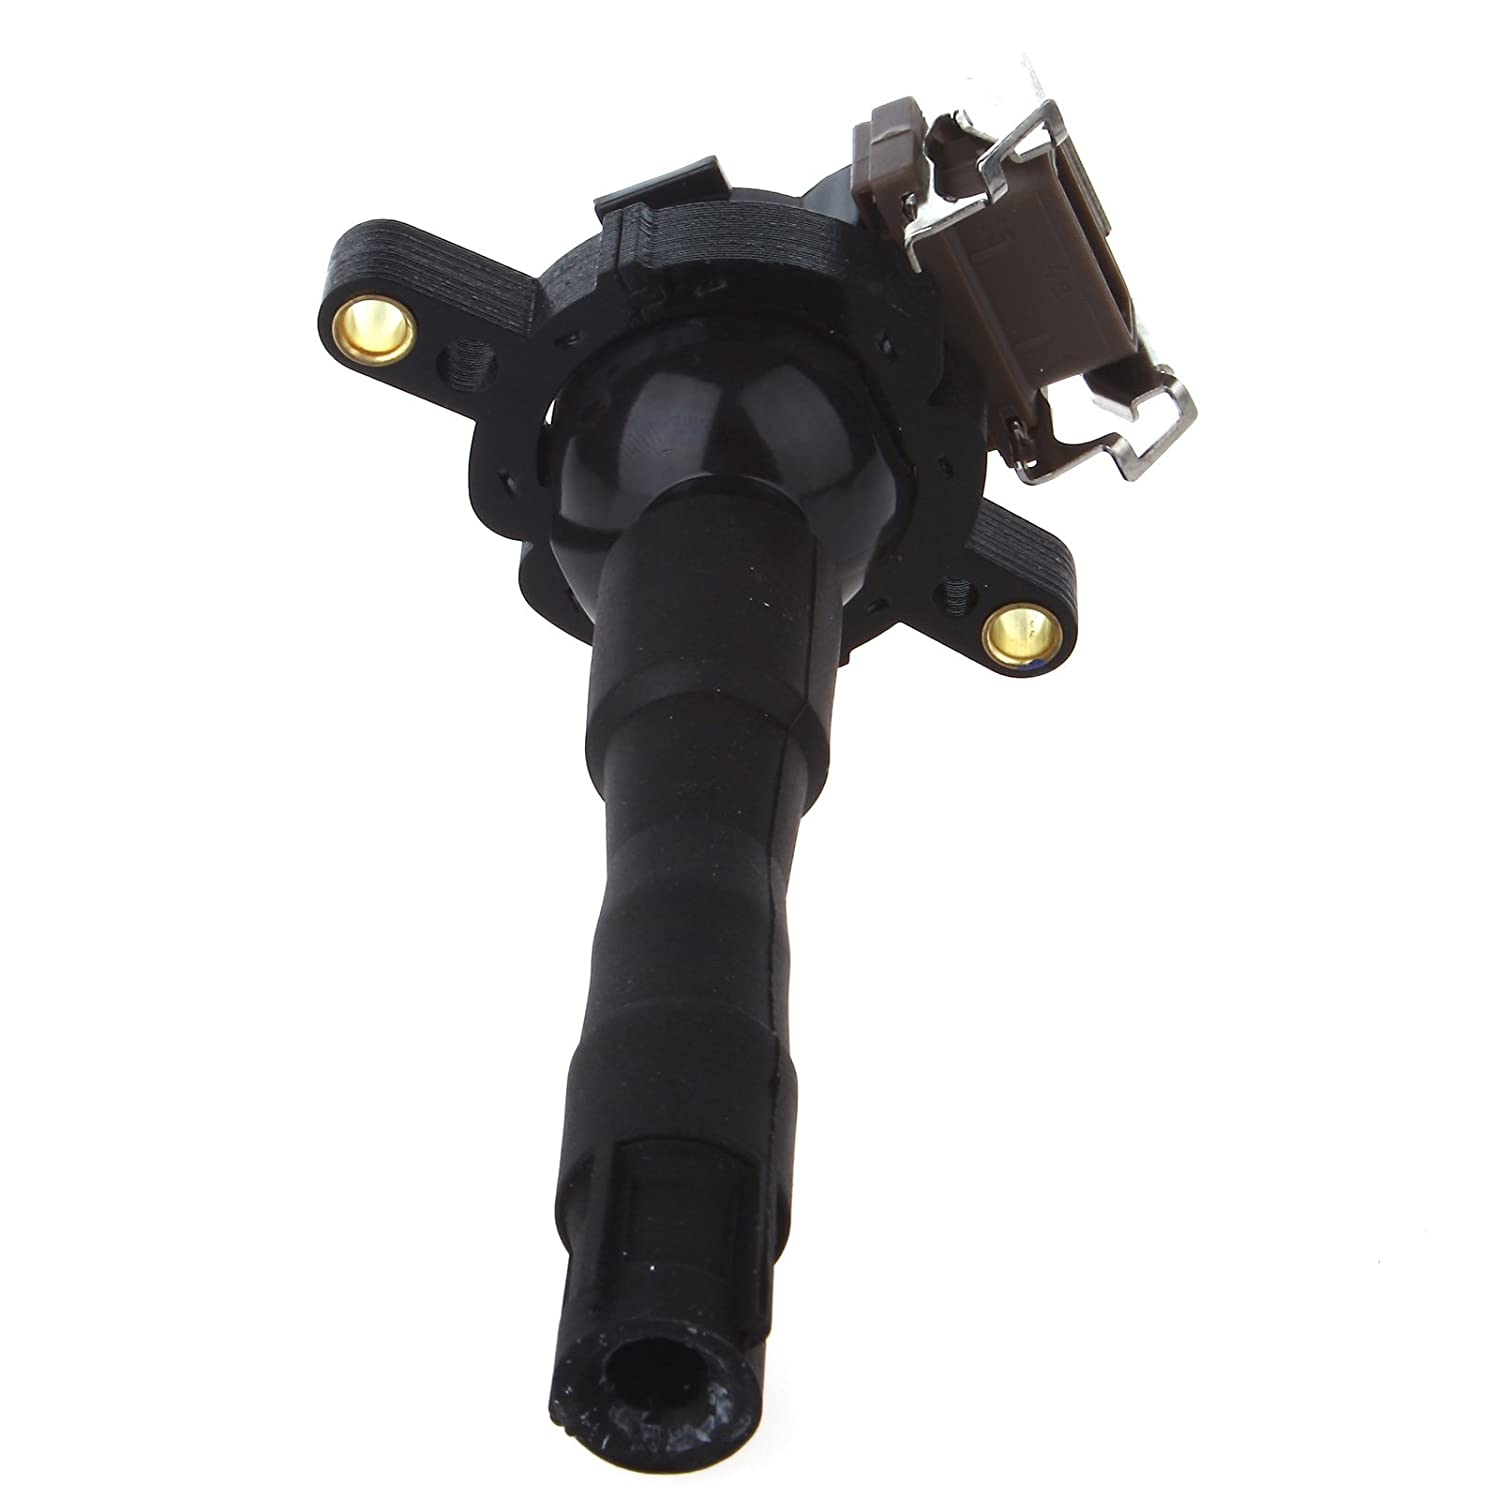 ECCPP Ignition Coil for BMW Land Rover Bentley Rolls-Royce V6 V8 V12 Compatible with C1239 UF-300 UF-354